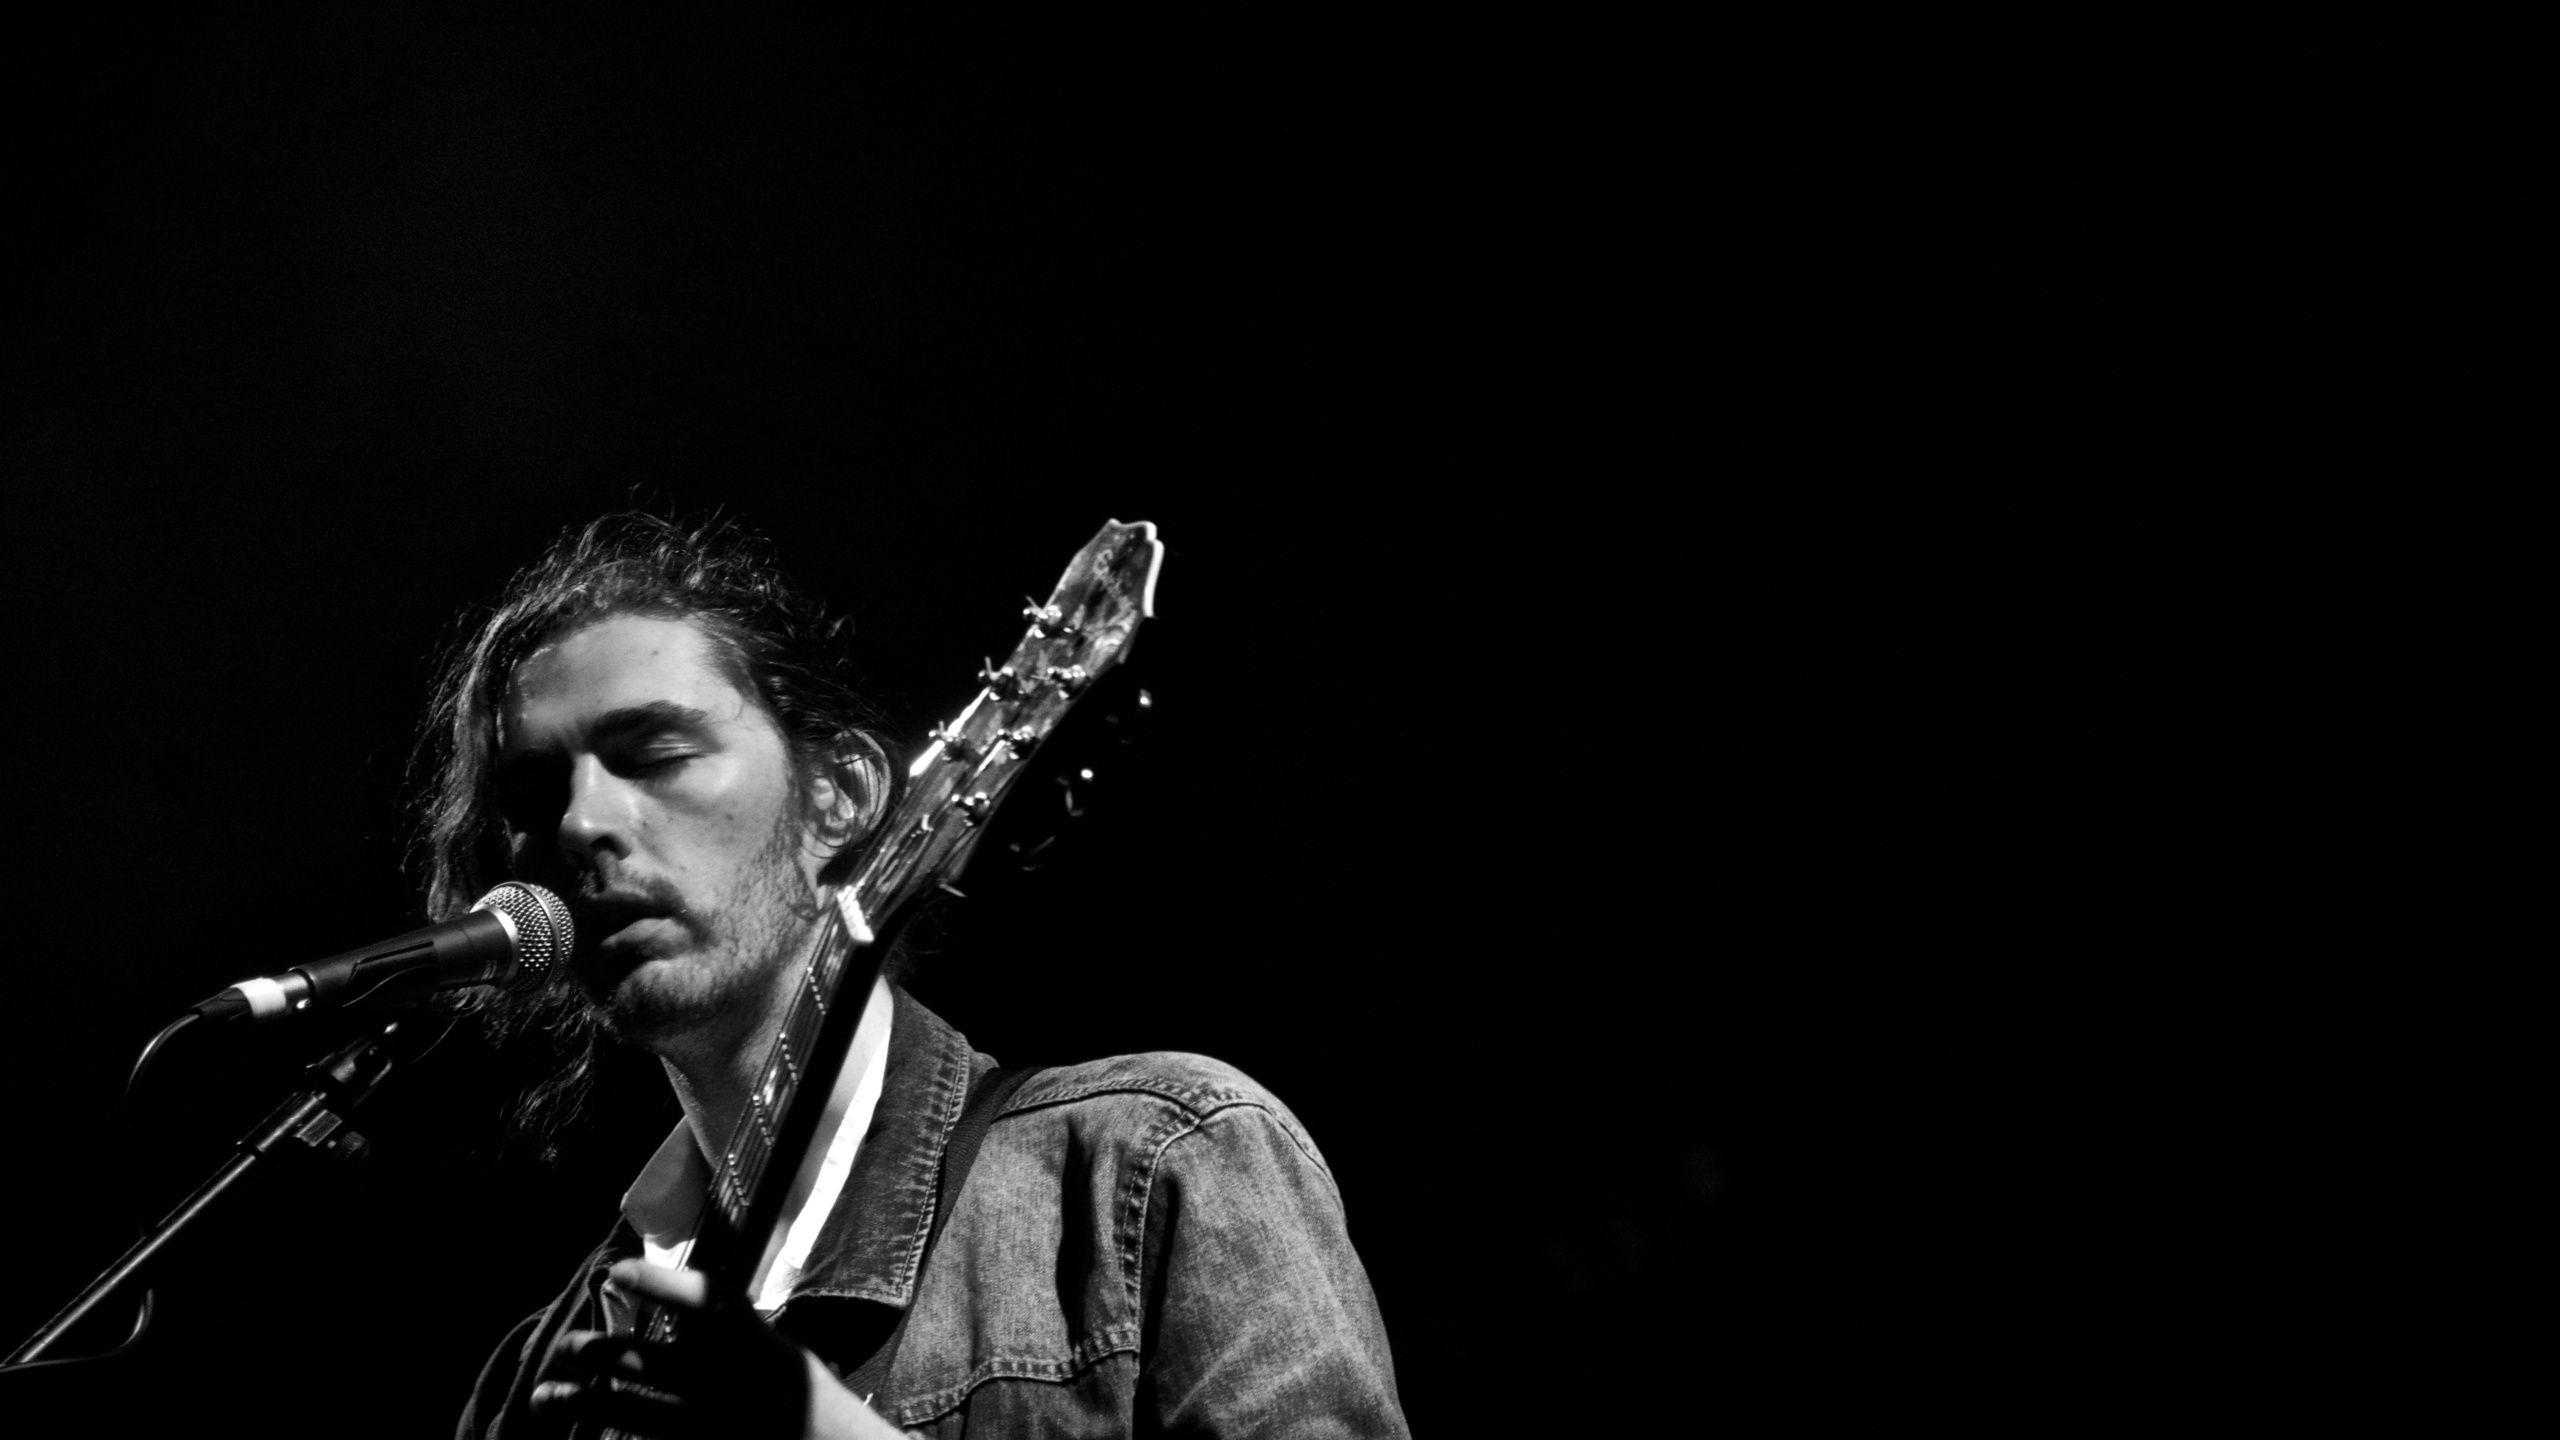 2560x1440 Hozier Singer, Hozier Concert Music Poster, Blues, Indie